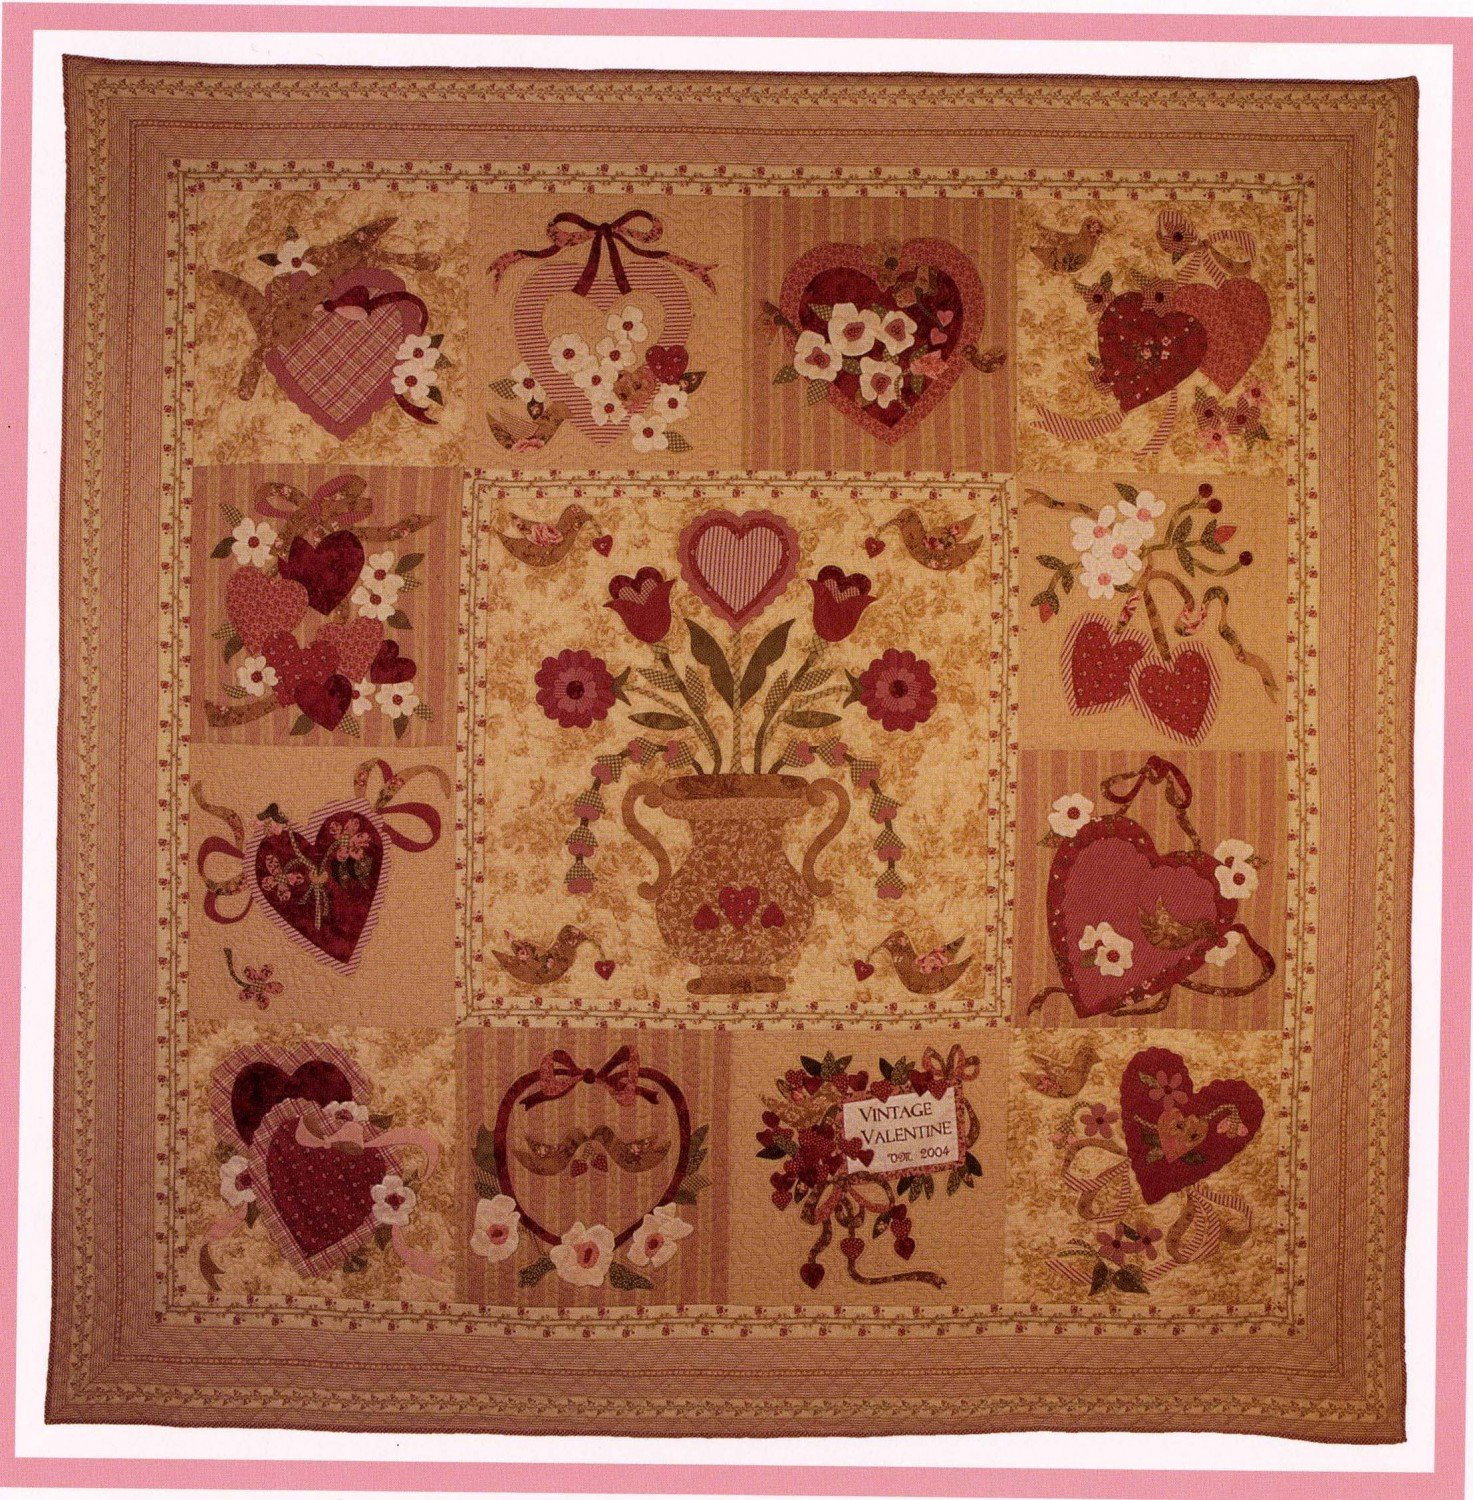 Vintage Valentine by The Vintage Spool